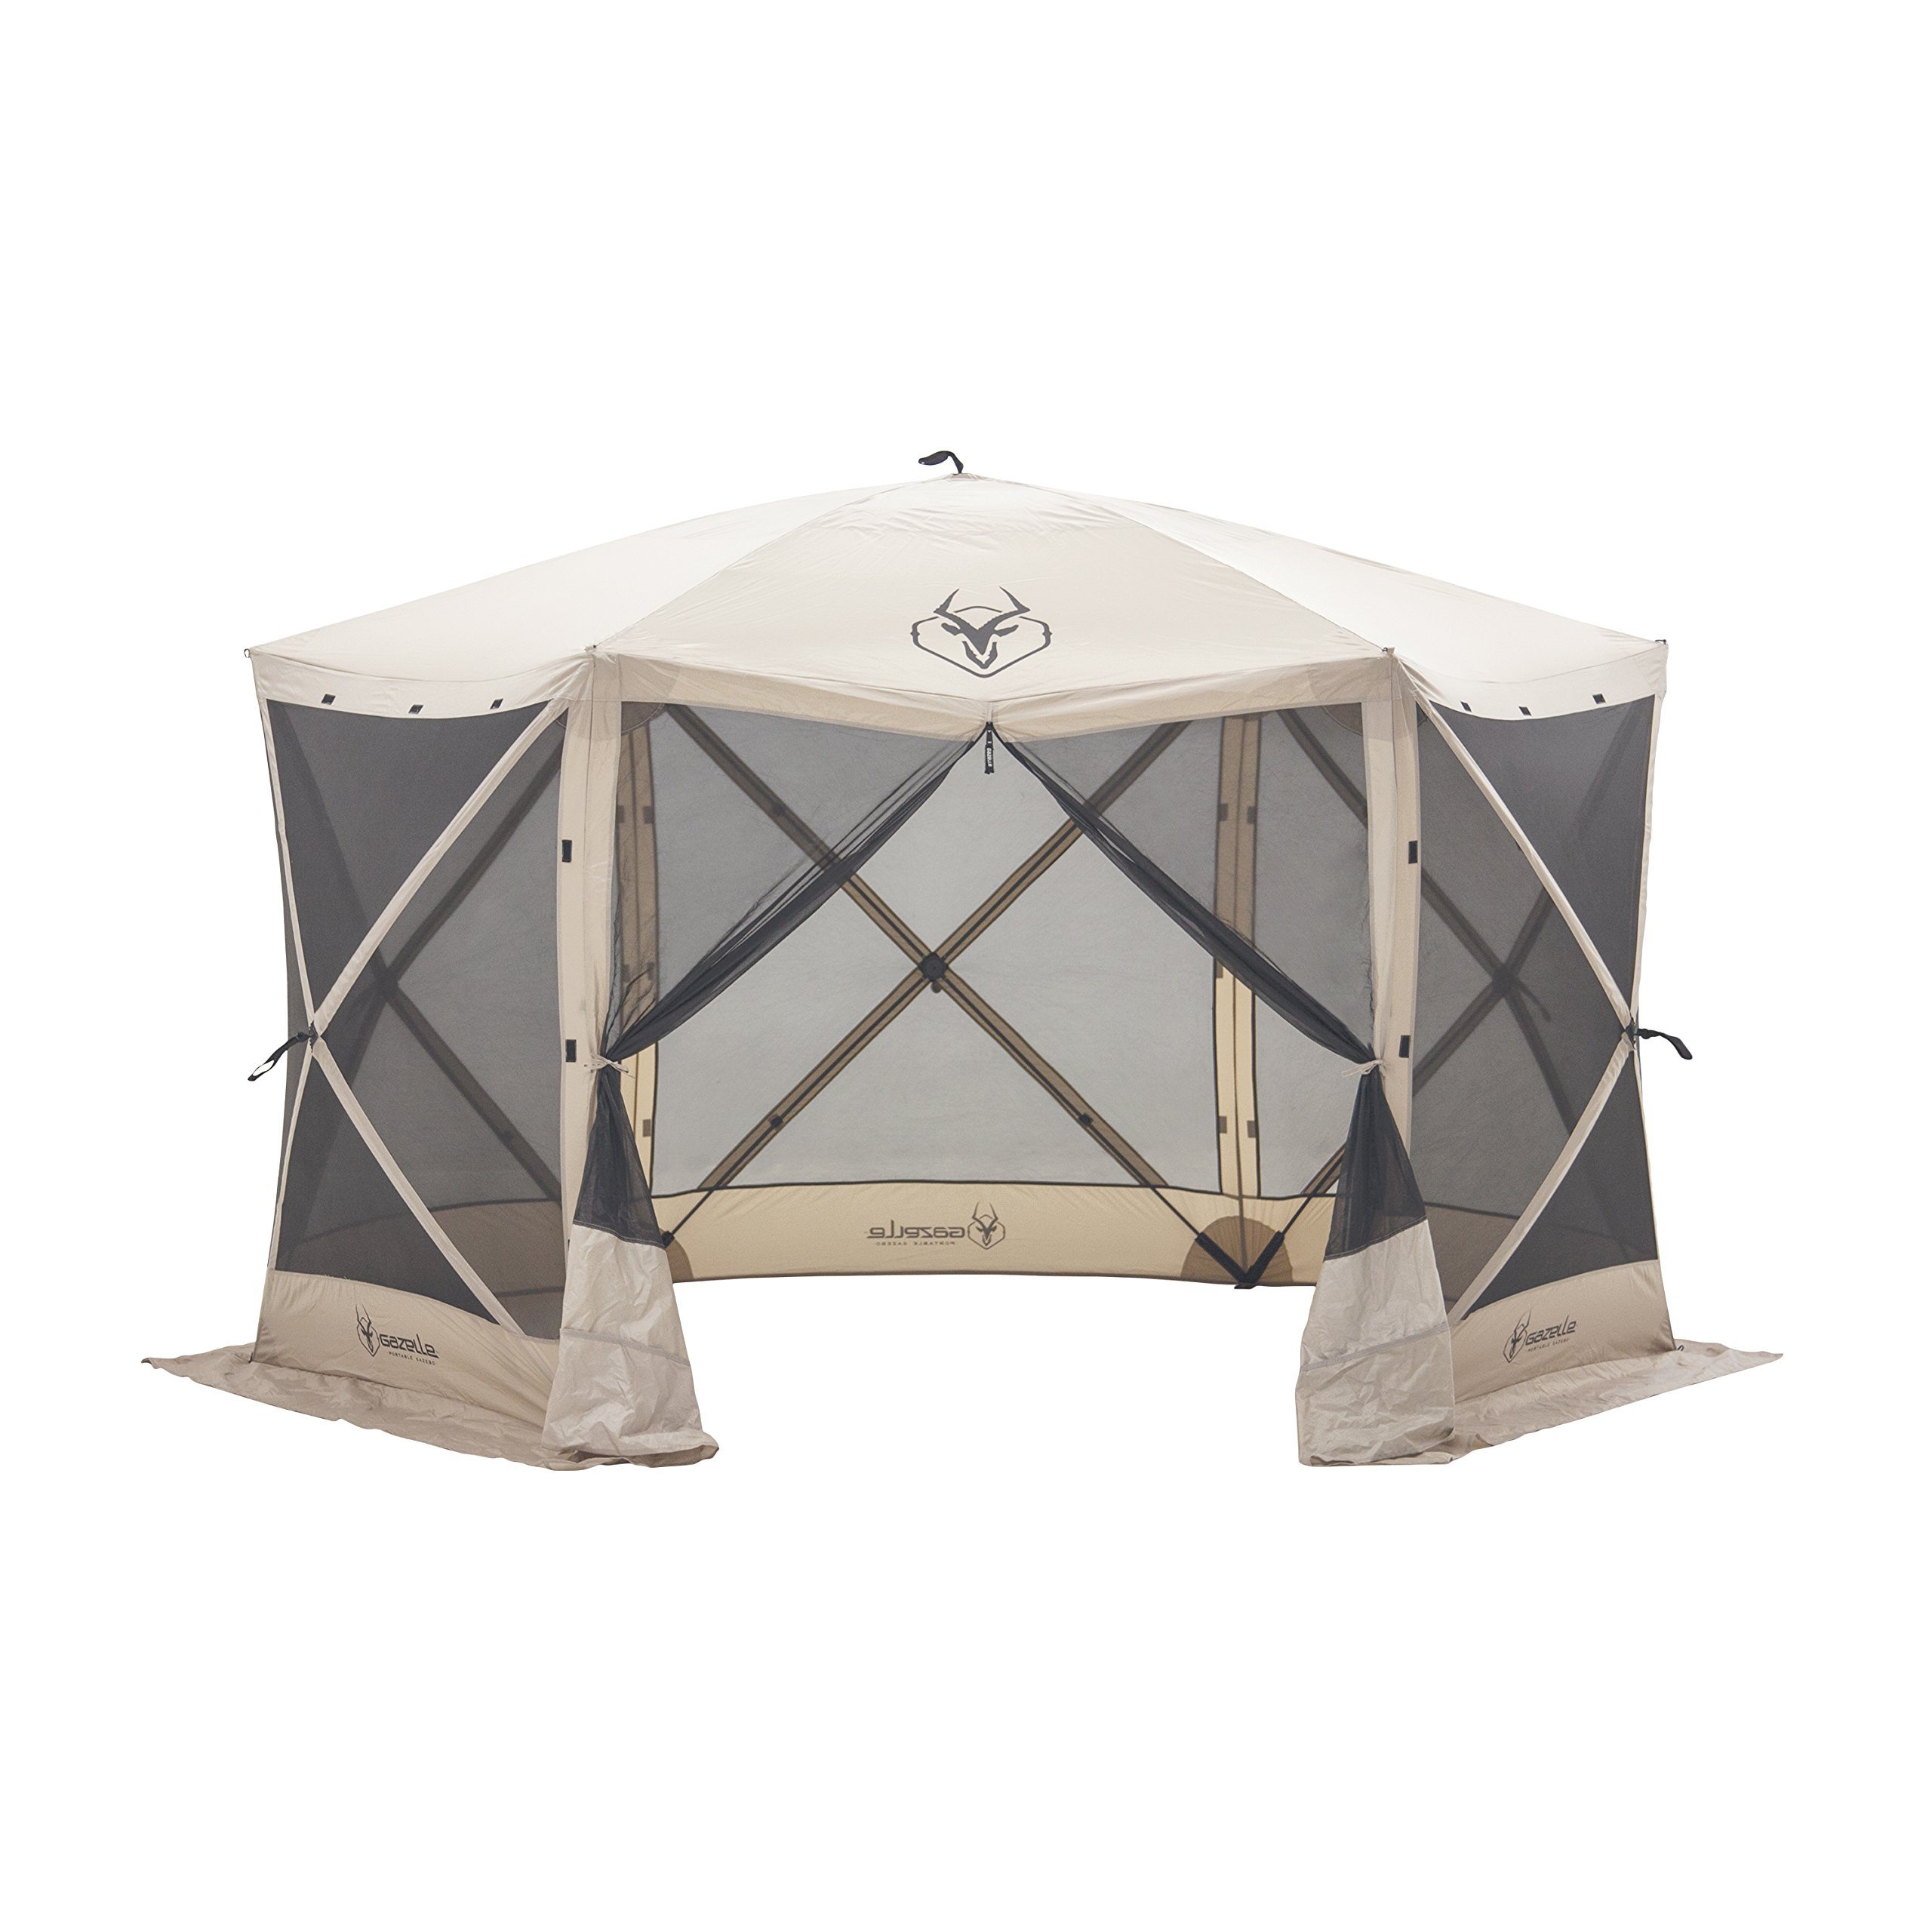 Gazelle G6 Portable Gazebo (6-sided)